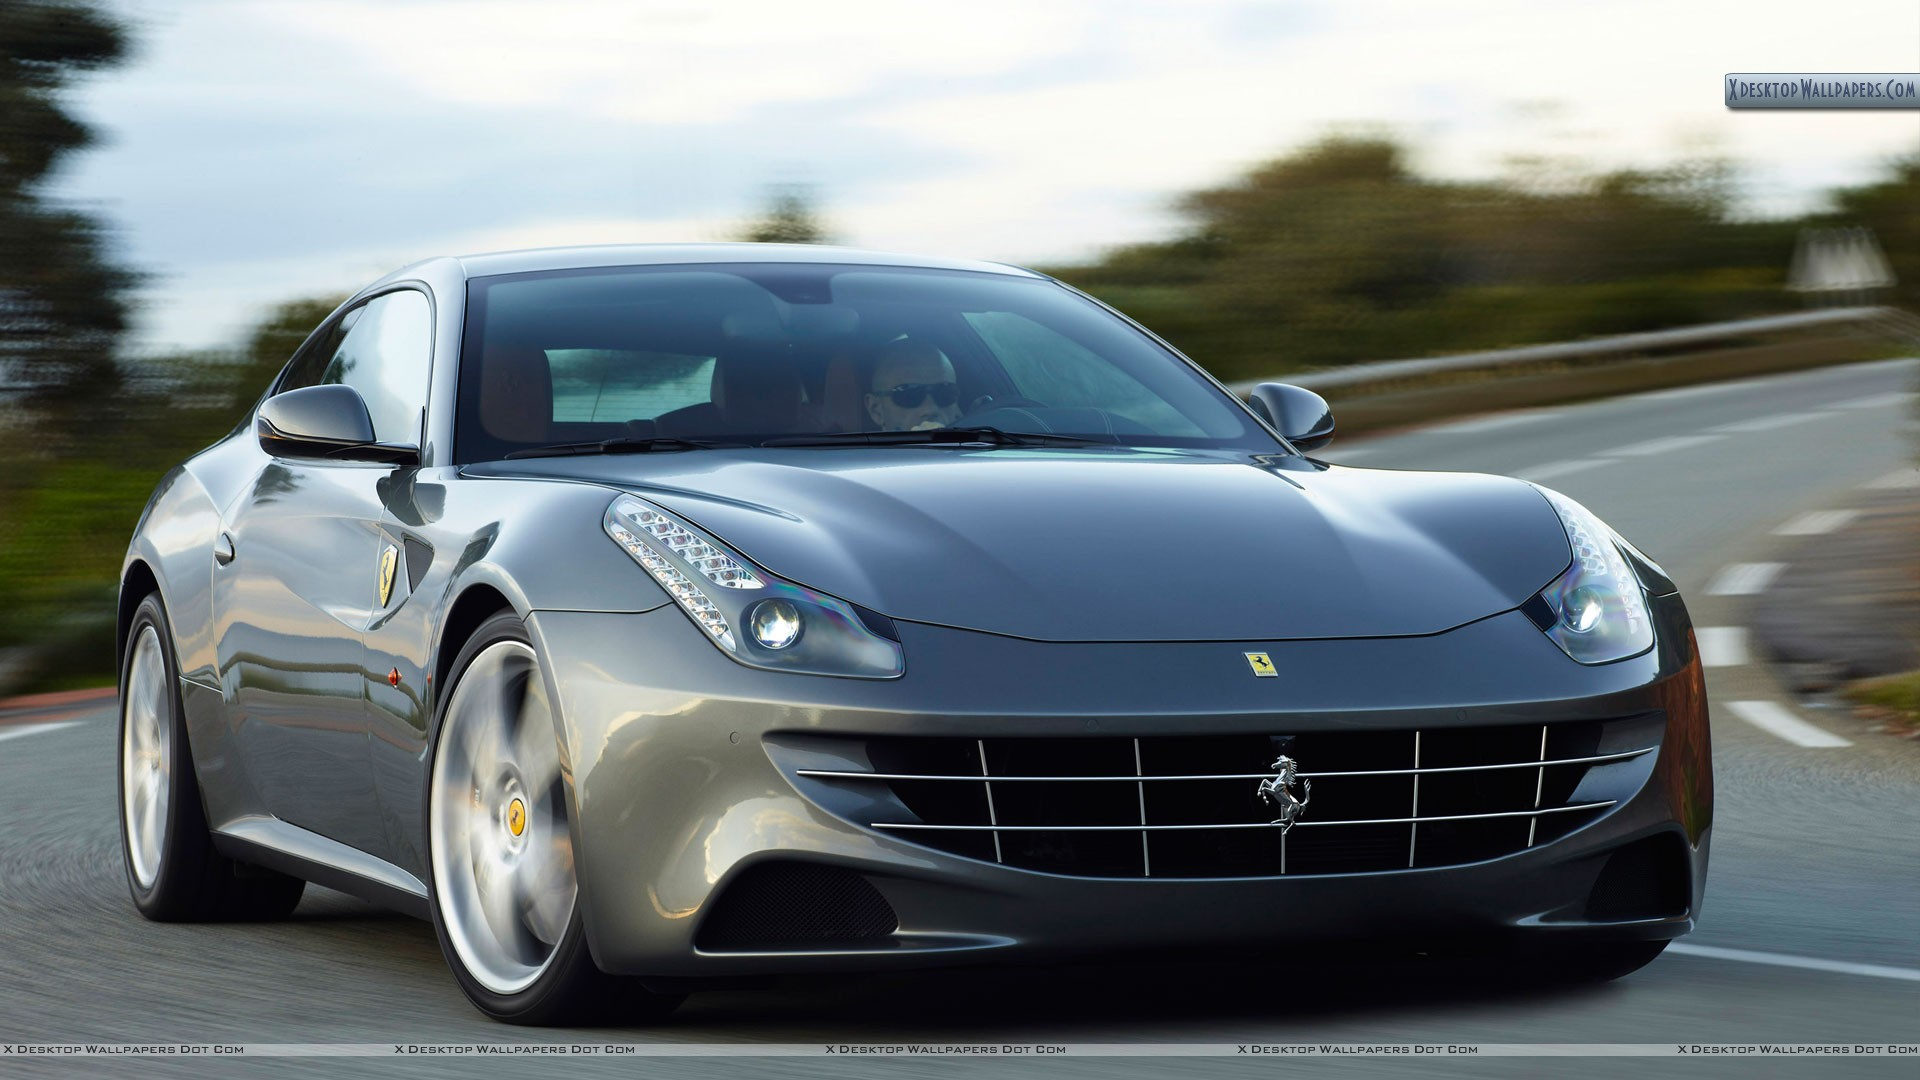 Ferrari 458 Italia in Grey Color. 154 Downloads, Added 51 days ago